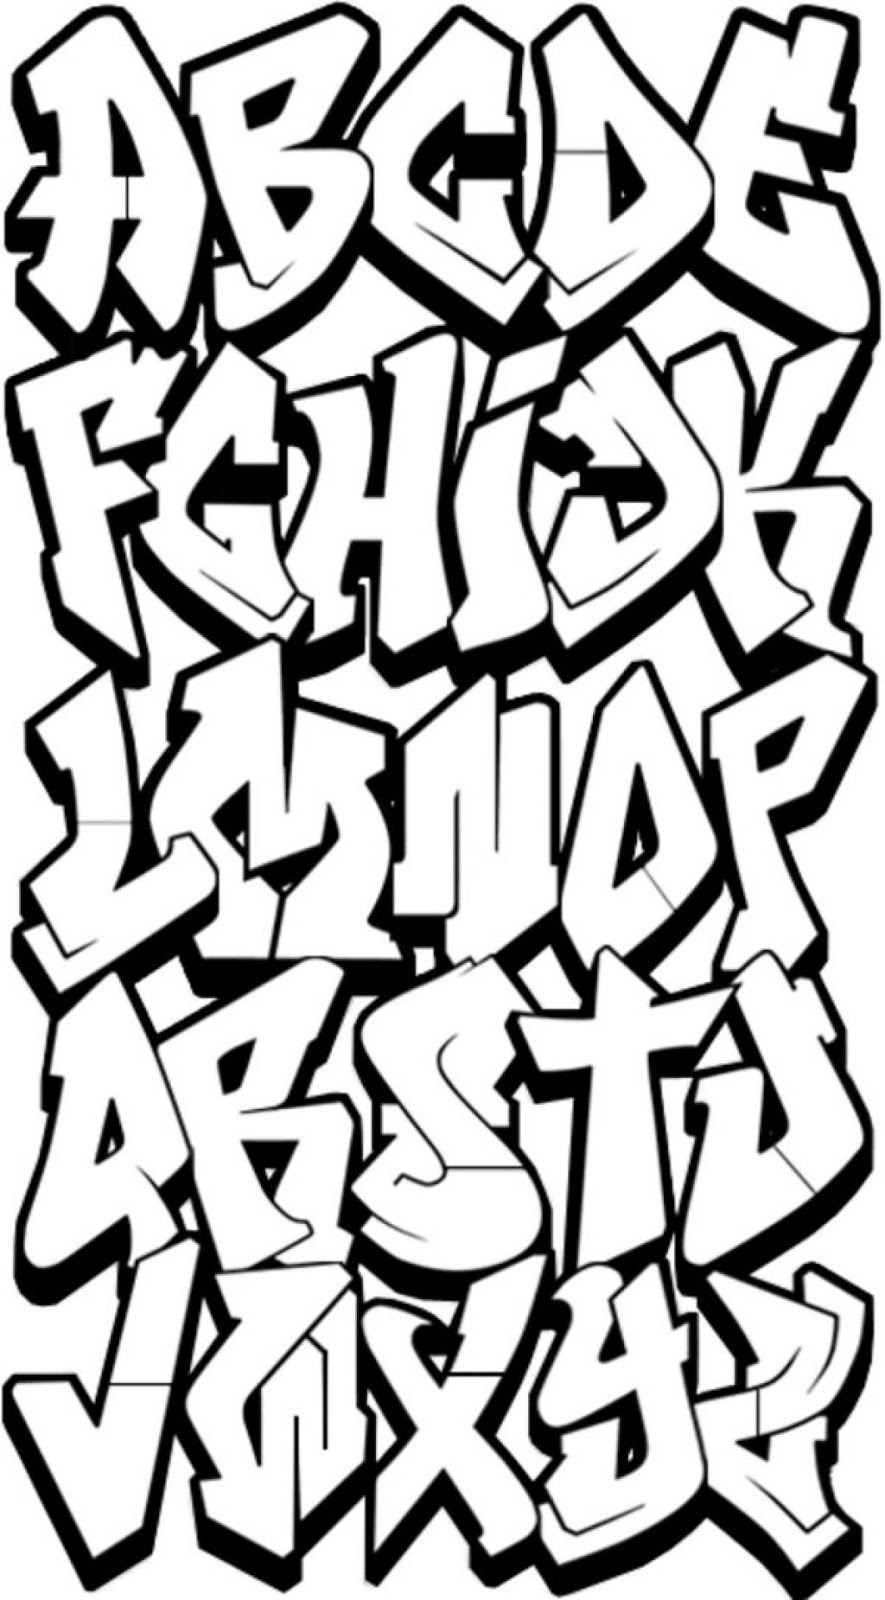 types of graffiti writing Foundries & type designers typekit platform adobe stock complete your composition with one of our best shots from among millions of royalty-free photos.